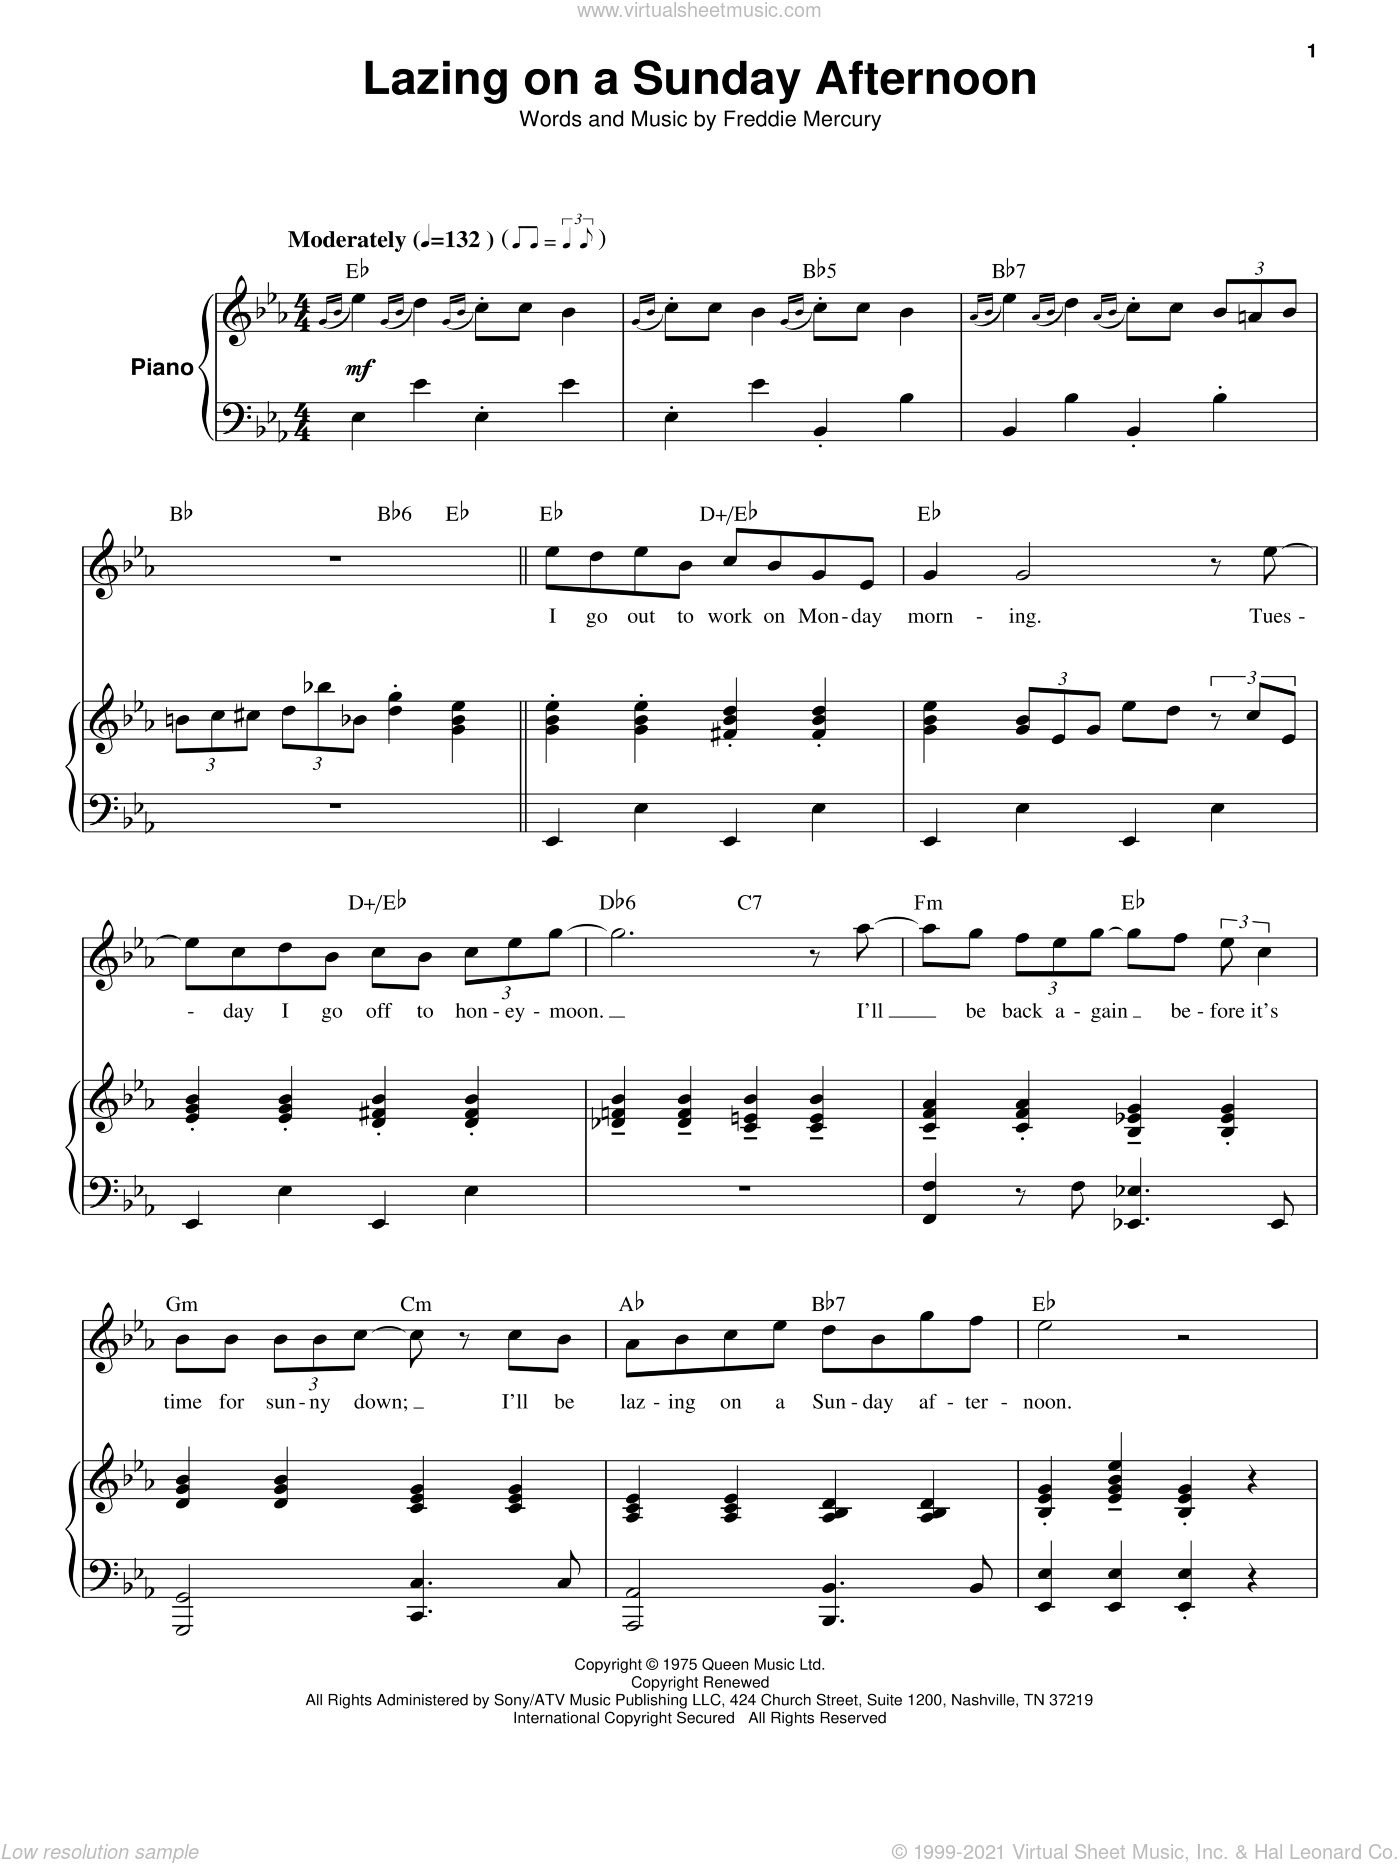 Lazing On A Sunday Afternoon sheet music for keyboard or piano by Queen and Freddie Mercury, intermediate skill level